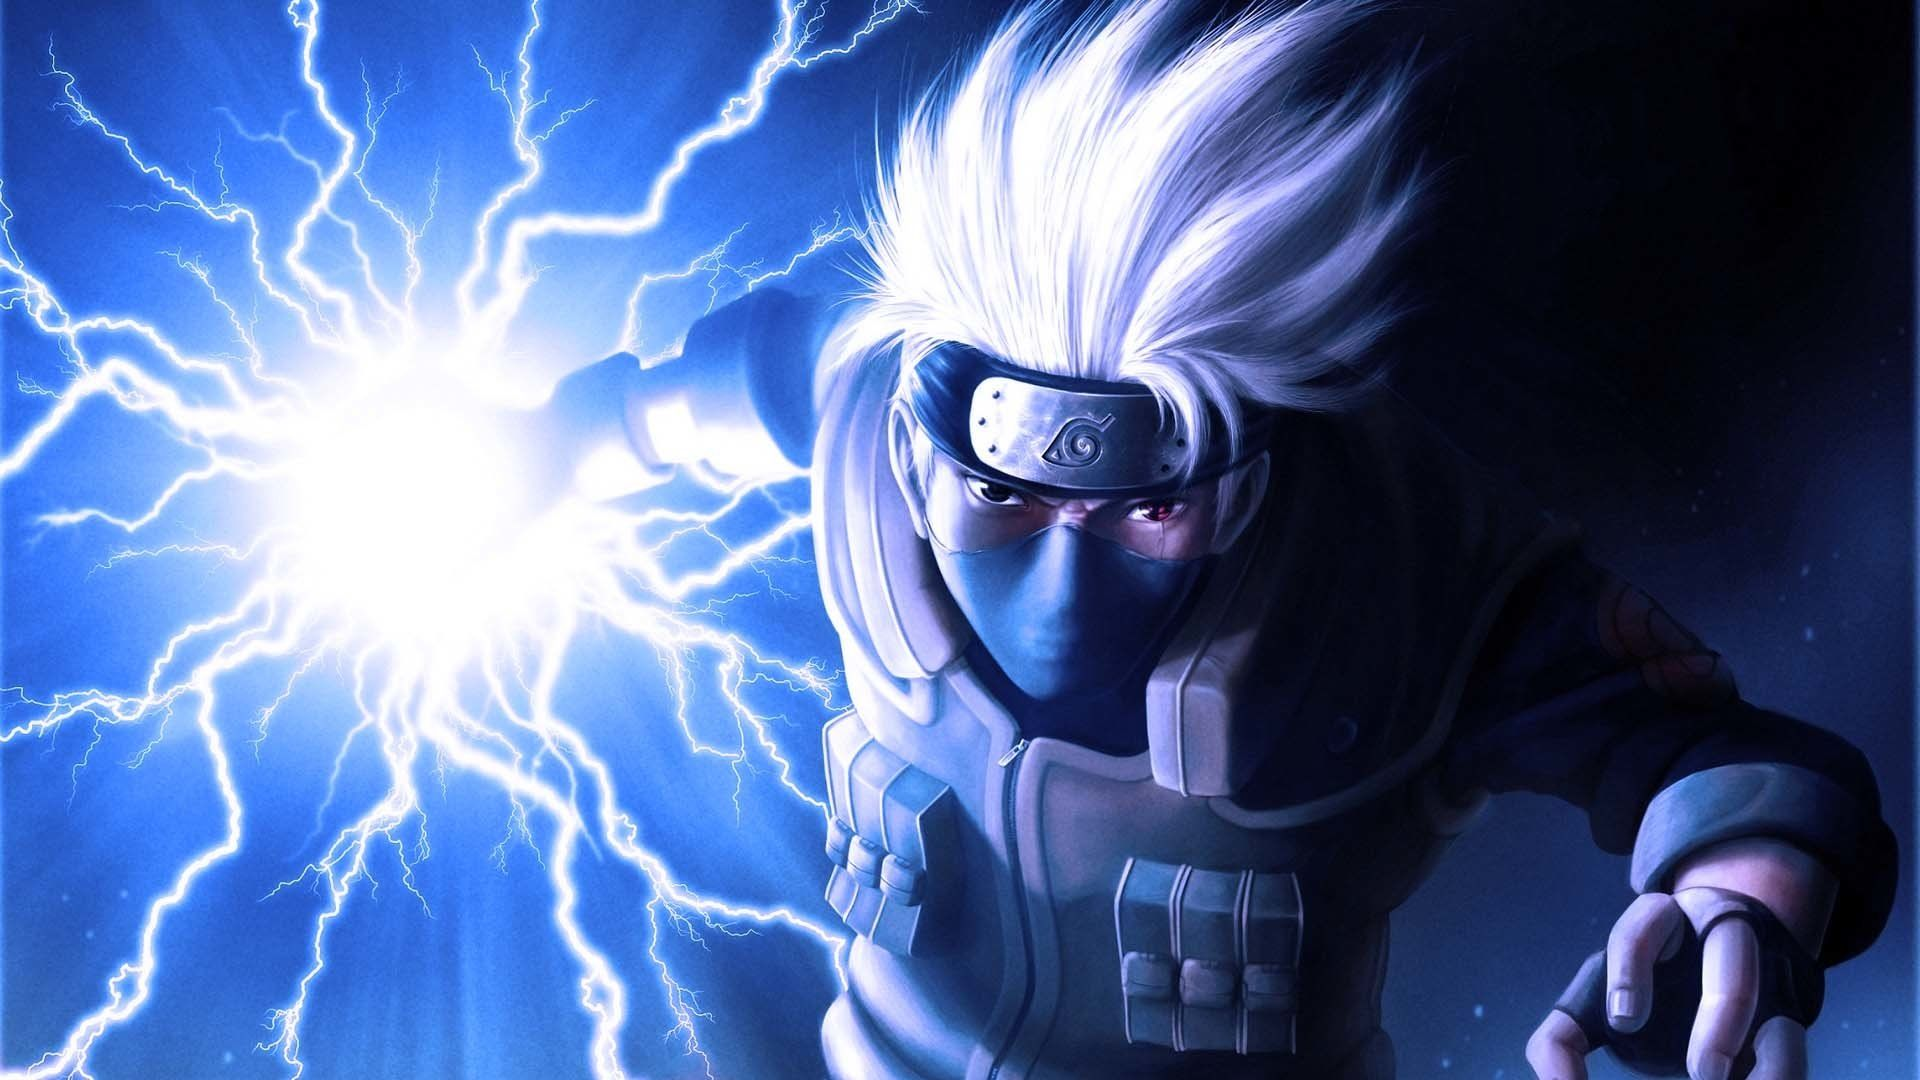 1920x1080 198 Kakashi Hatake HD Wallpapers | Background Images - Wallpaper Abyss